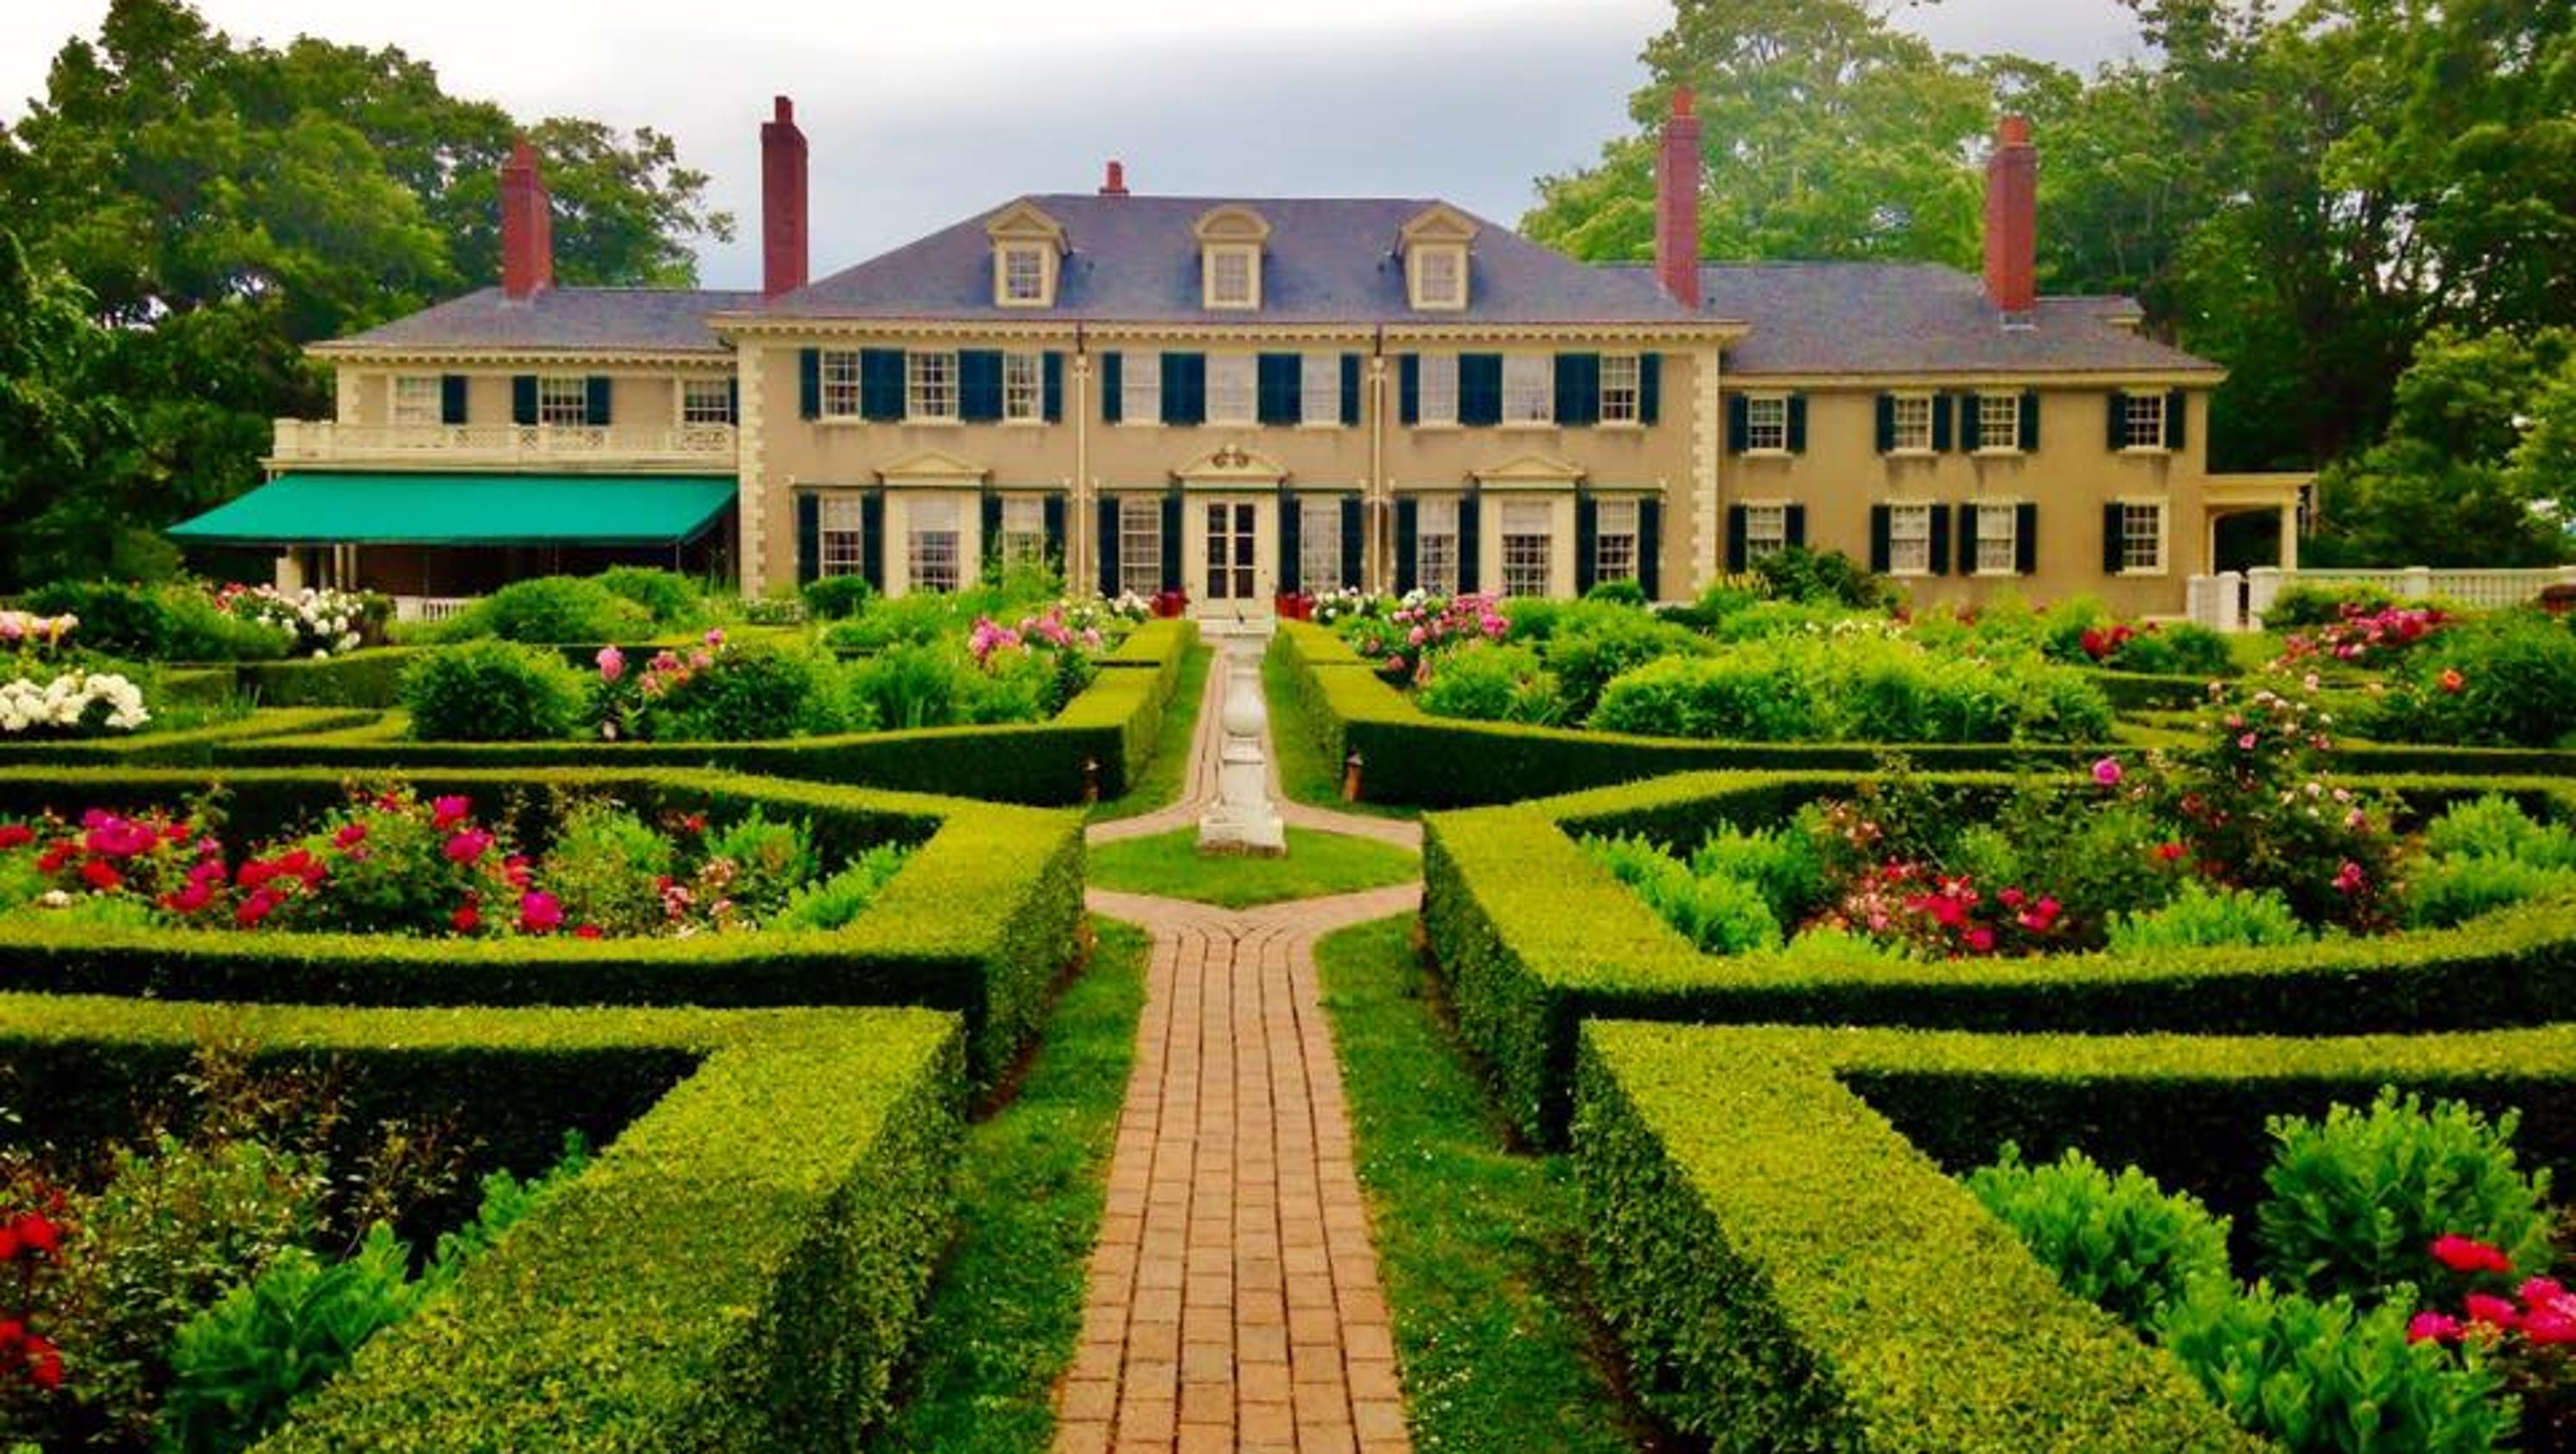 5 Important Historic Sites To See In Vermont